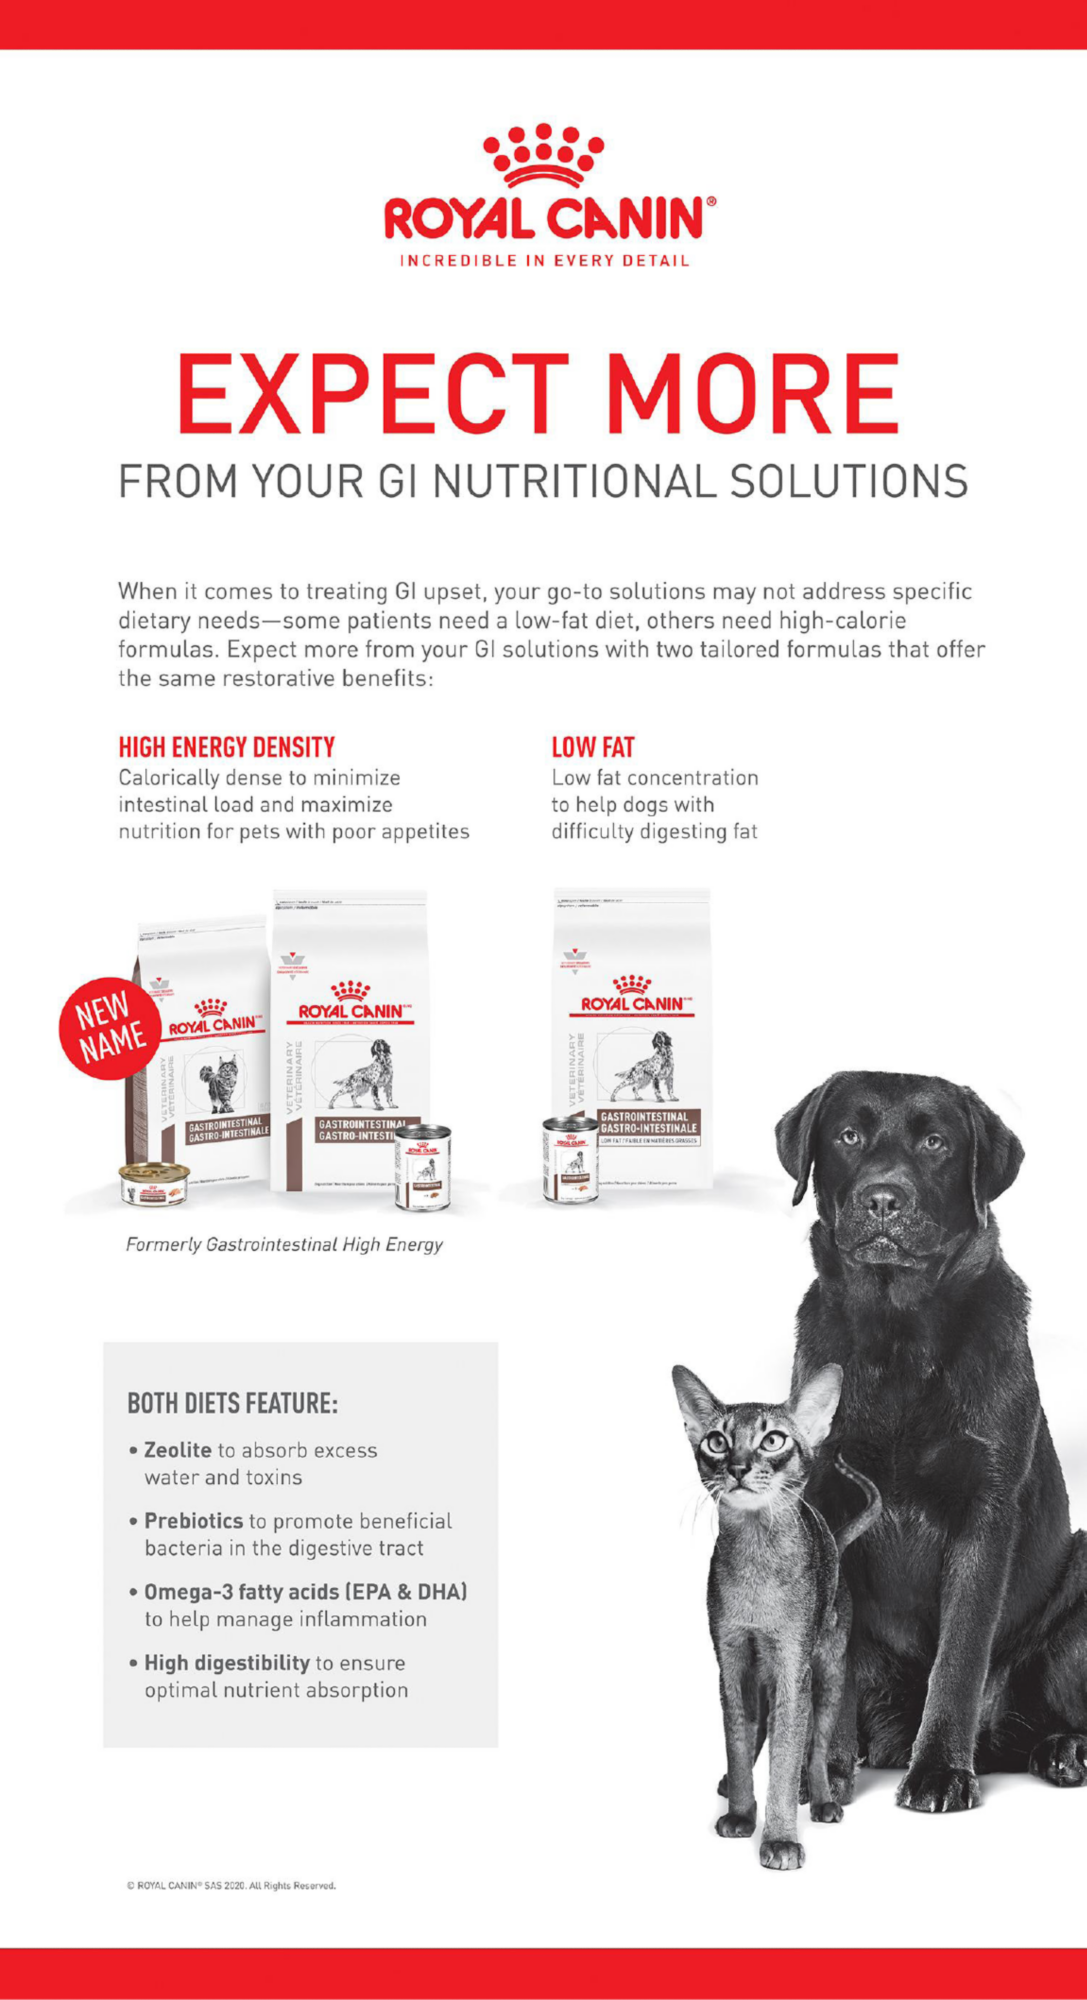 ROYAL CANIN VENDOR (Dog/Cat)